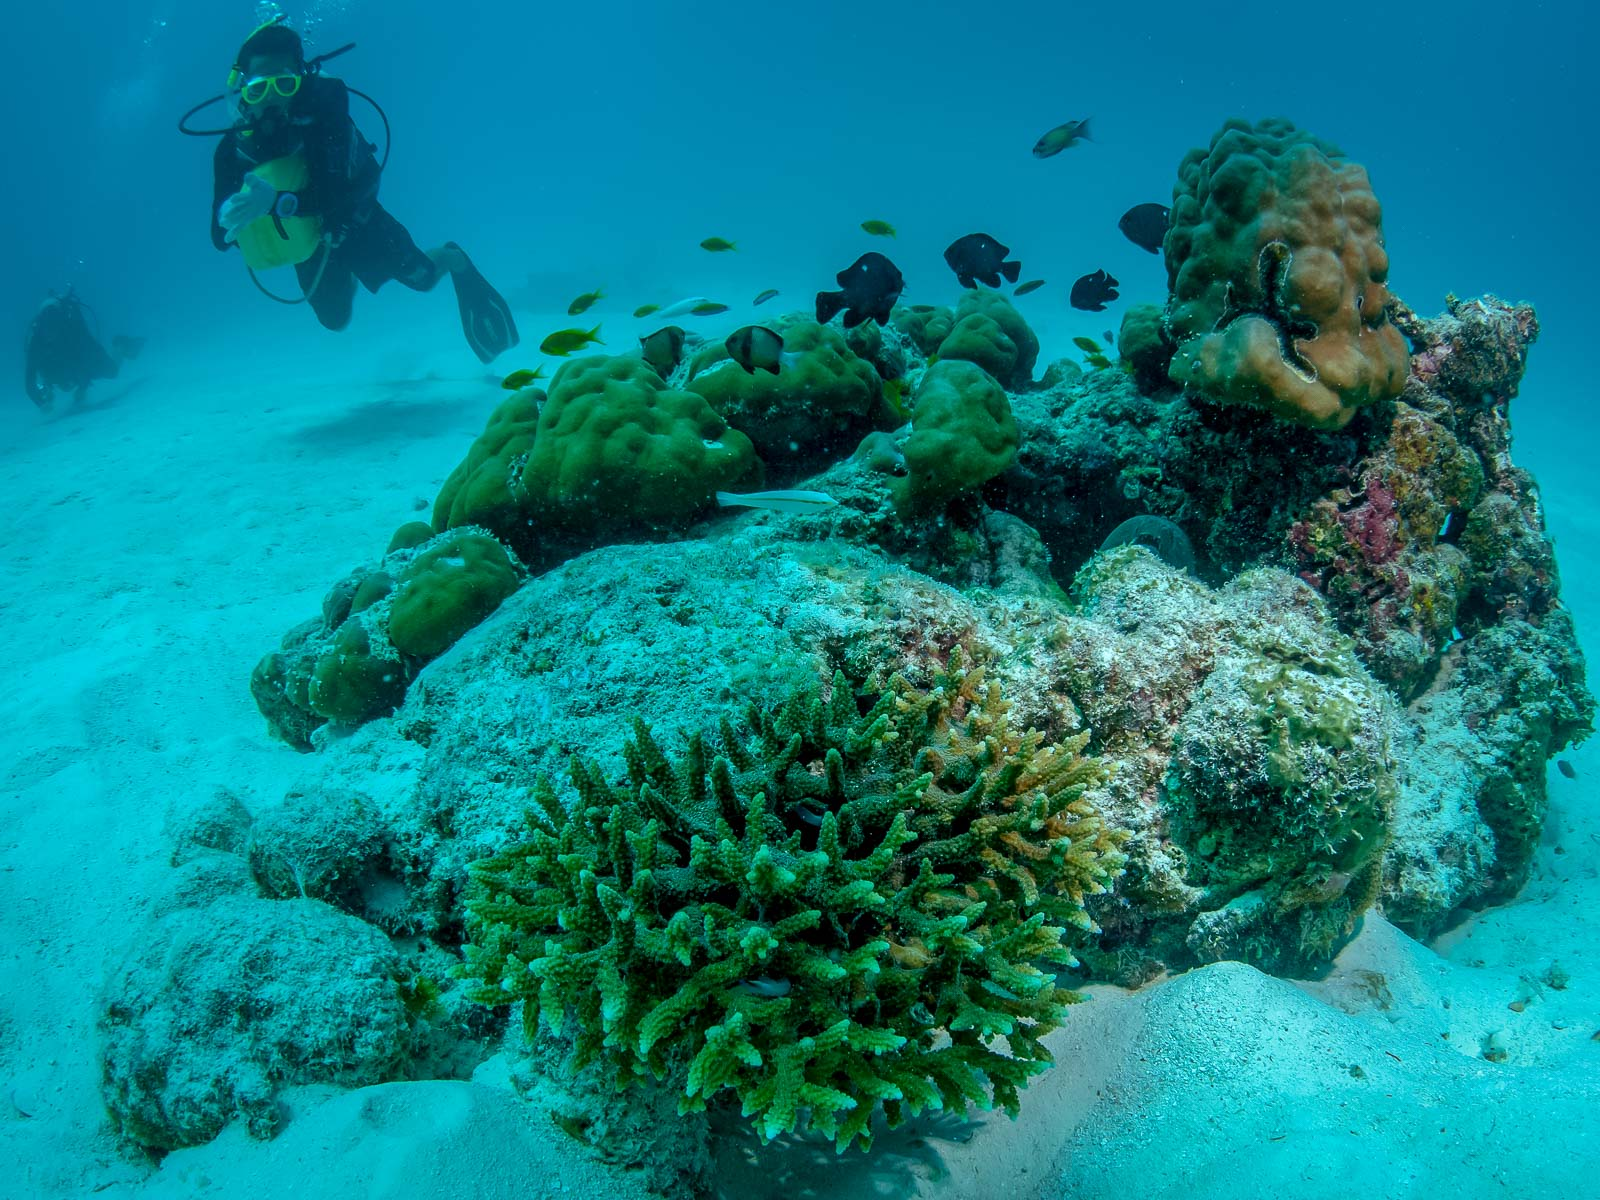 Reefscapers - healthy wild coral colonies on the reef Marine Savers Maldives